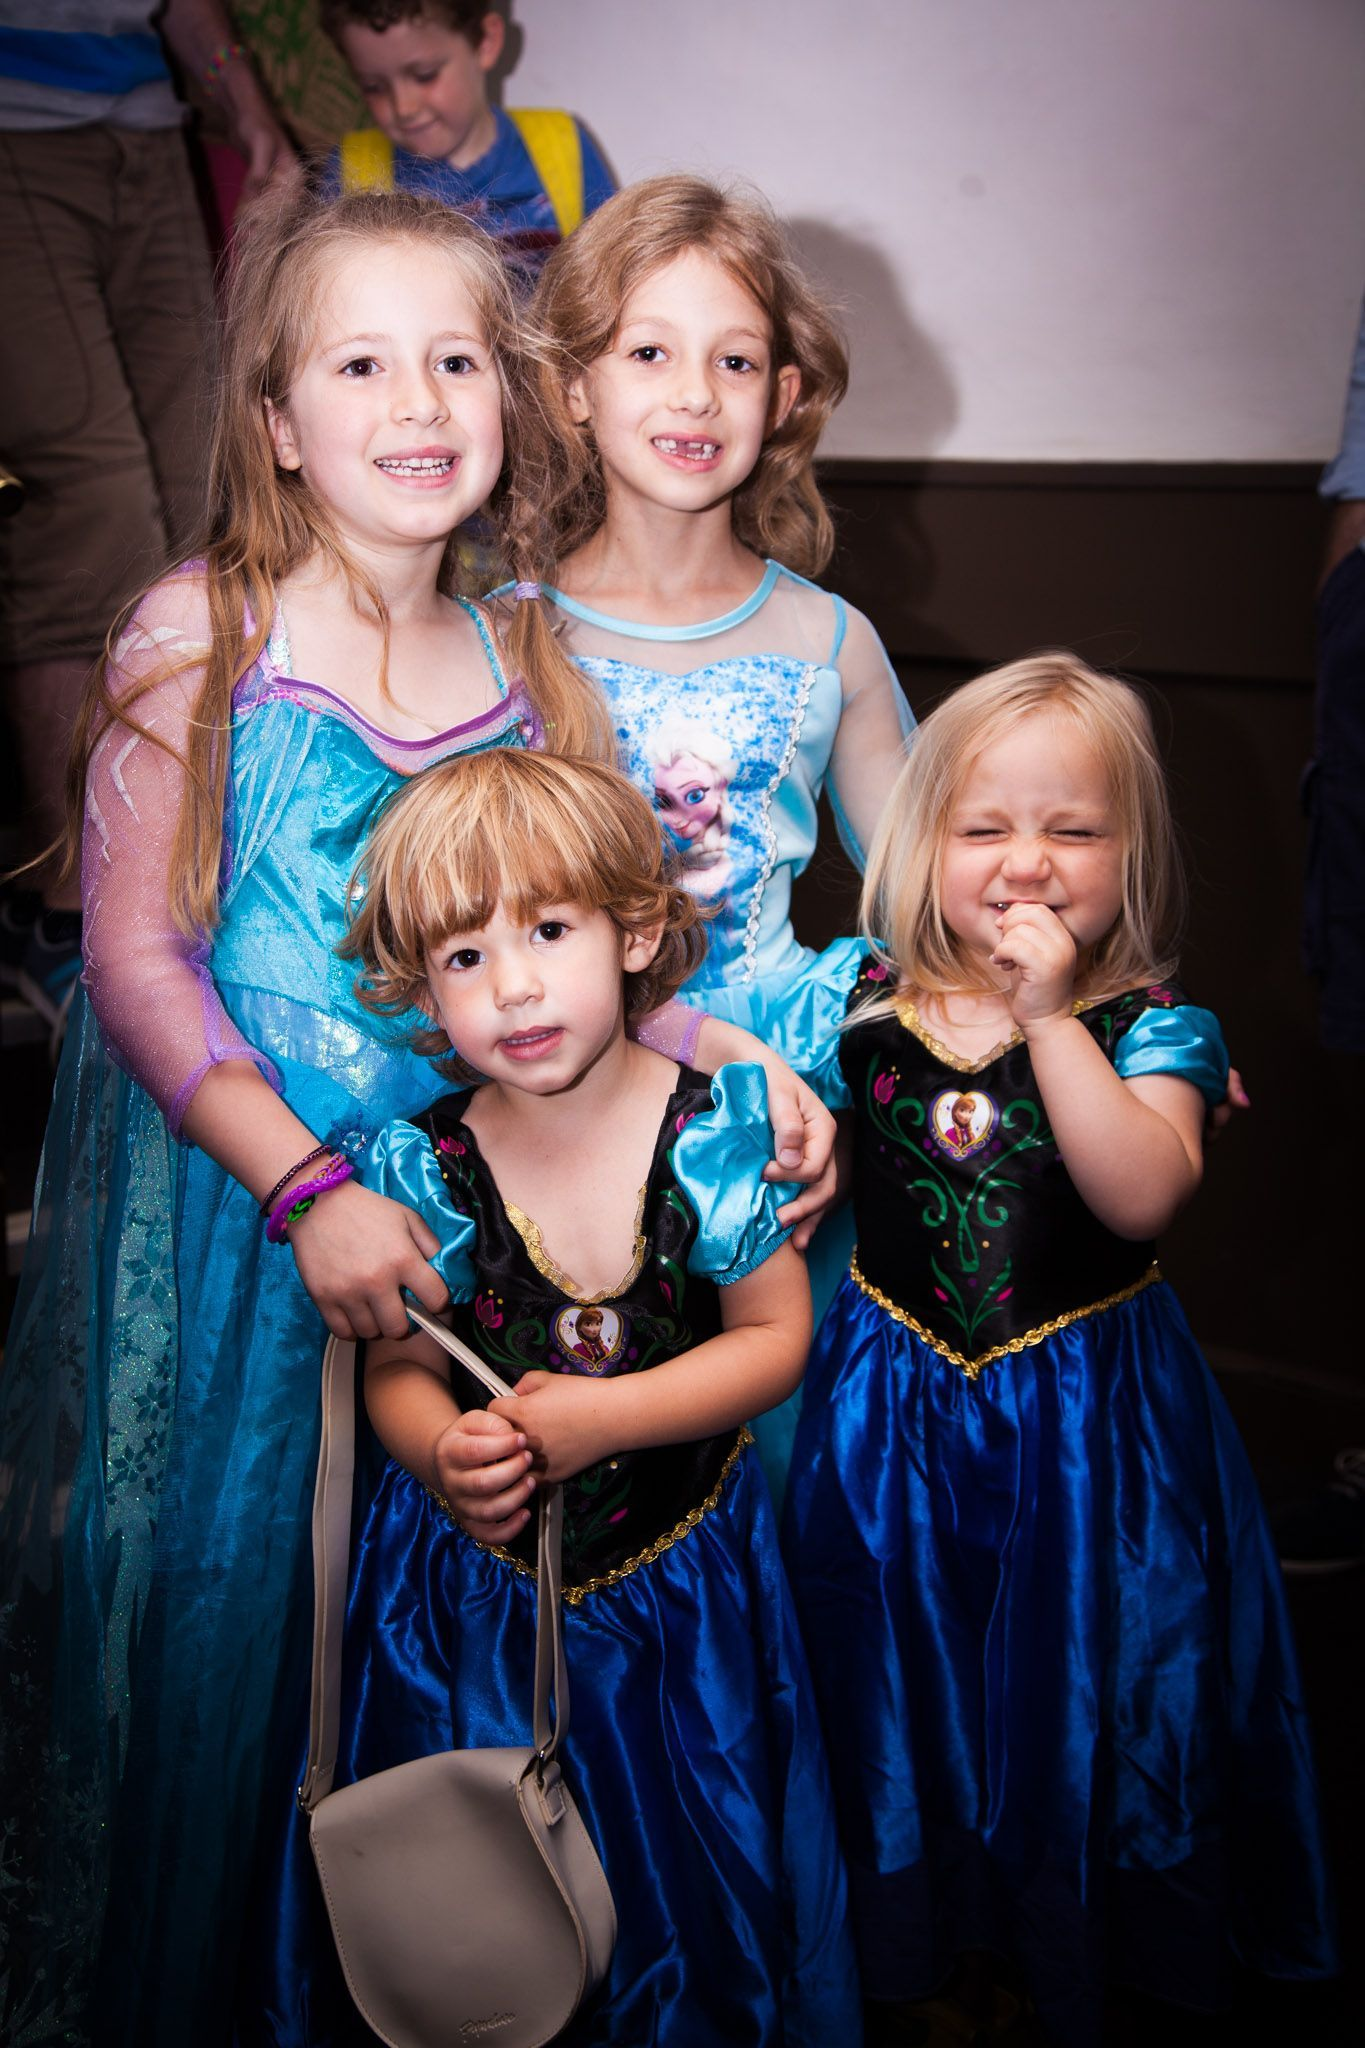 Sing A Long Frozen come to the Regnt during October half term,